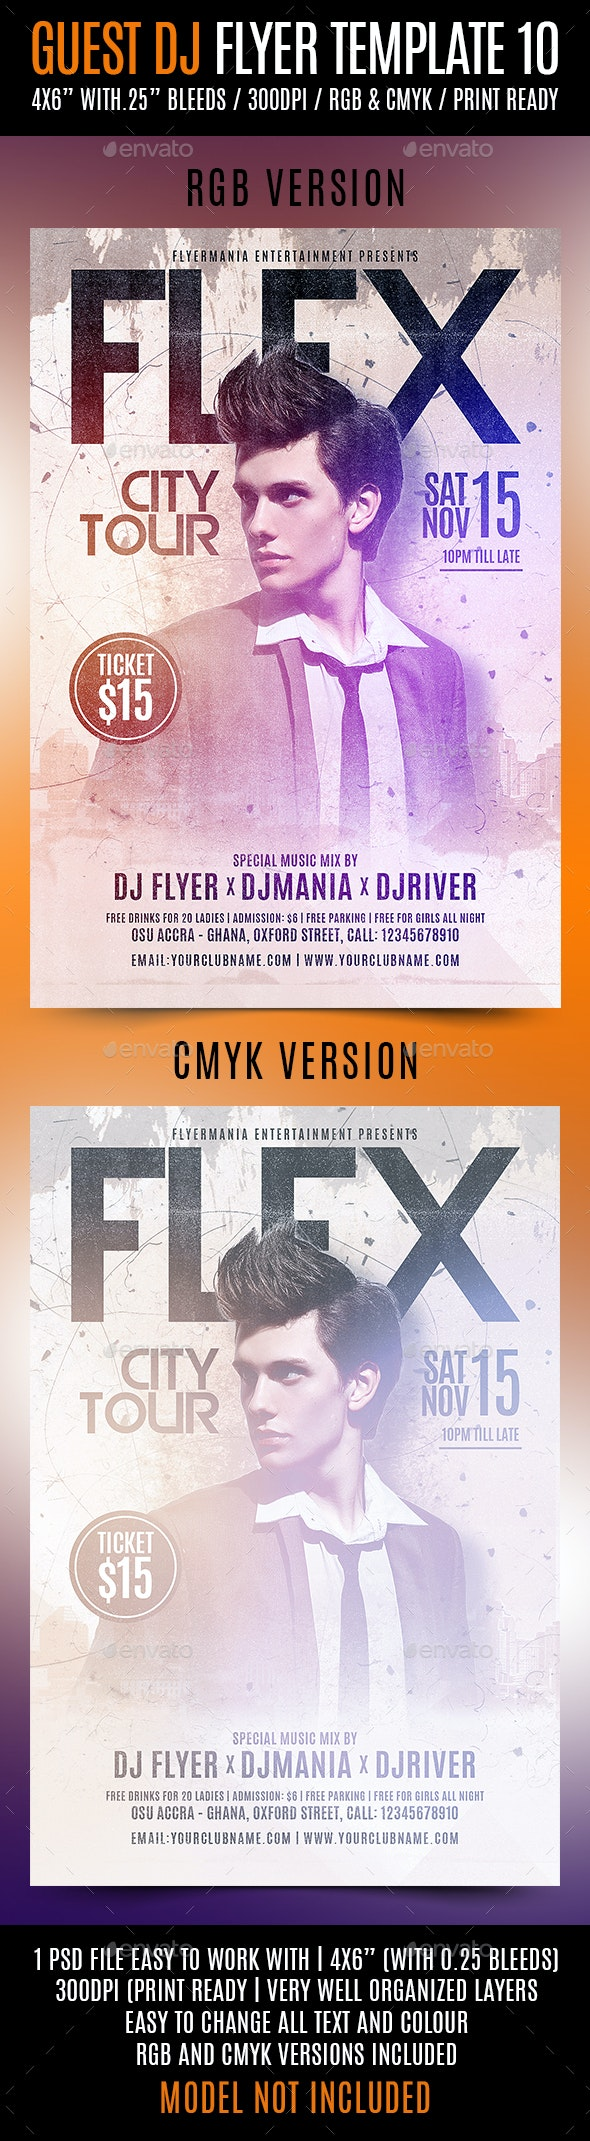 Guest DJ Flyer Template 10 - Clubs & Parties Events